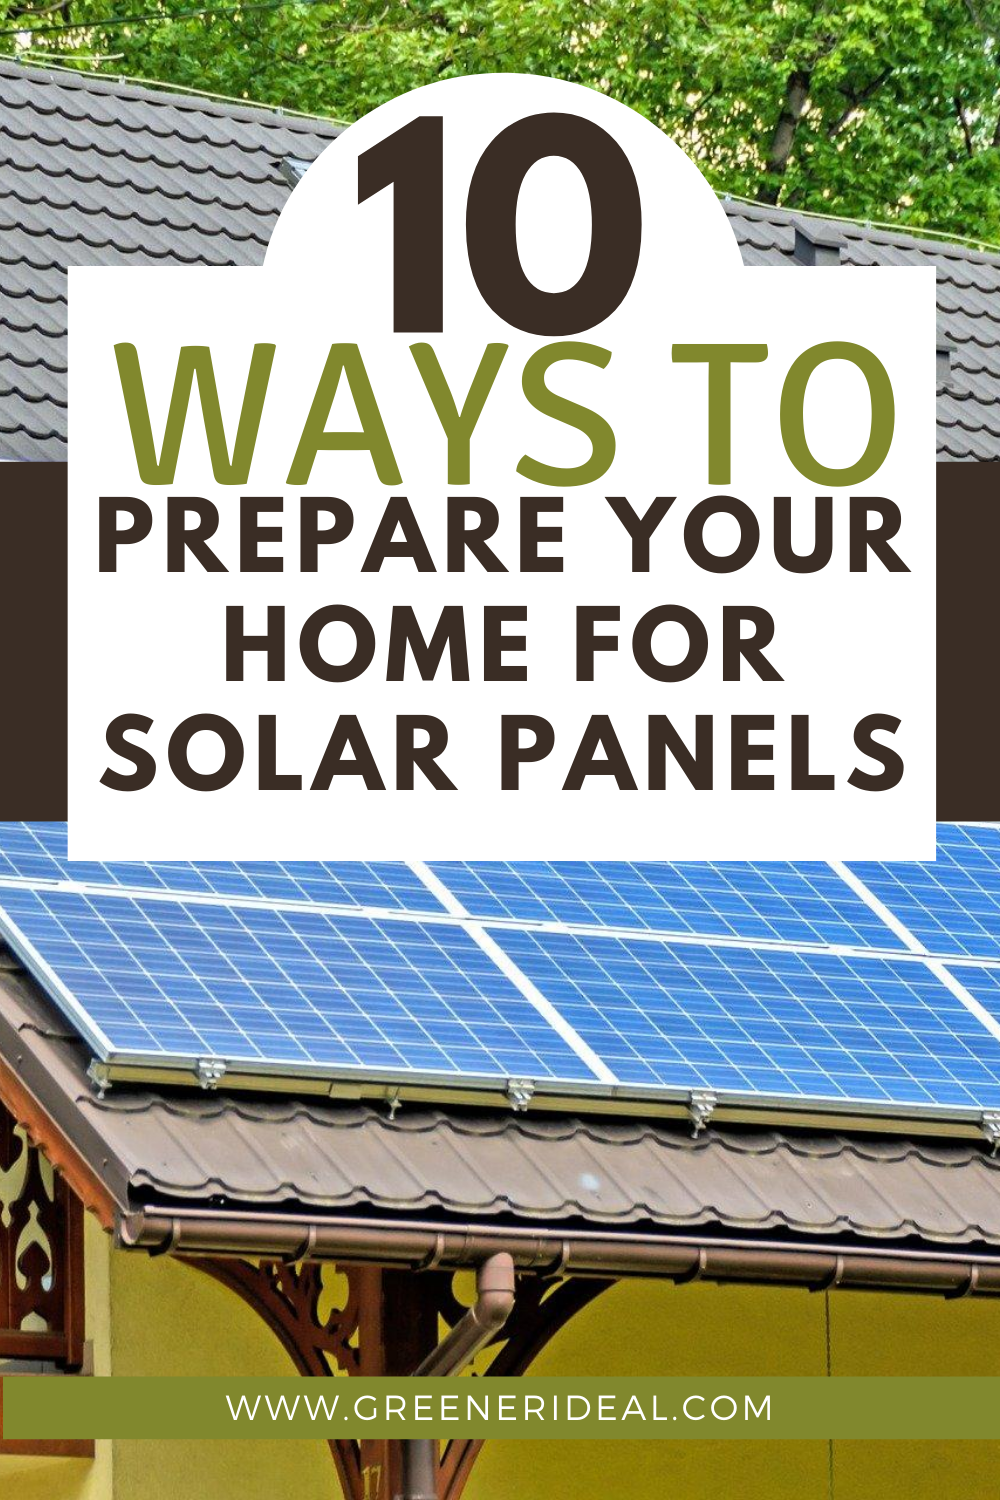 10 Ways To Prepare Your Home For Solar Panels In 2020 Solar Panels Solar Panels For Home Solar